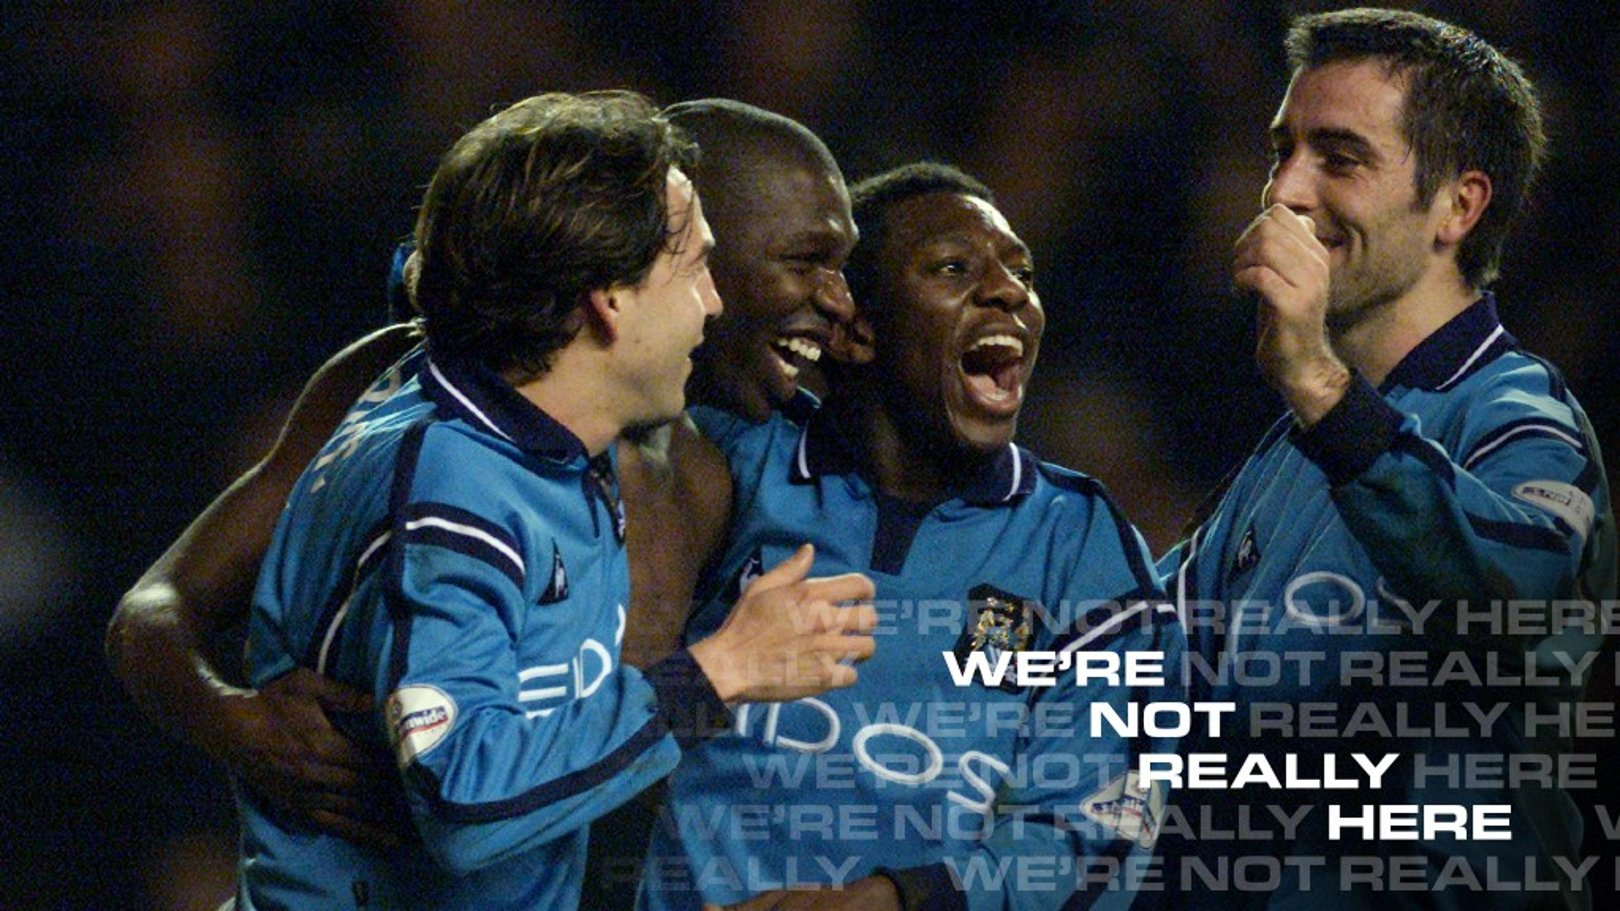 Goater and Horlock join forces for Swansea We're Not Really Here